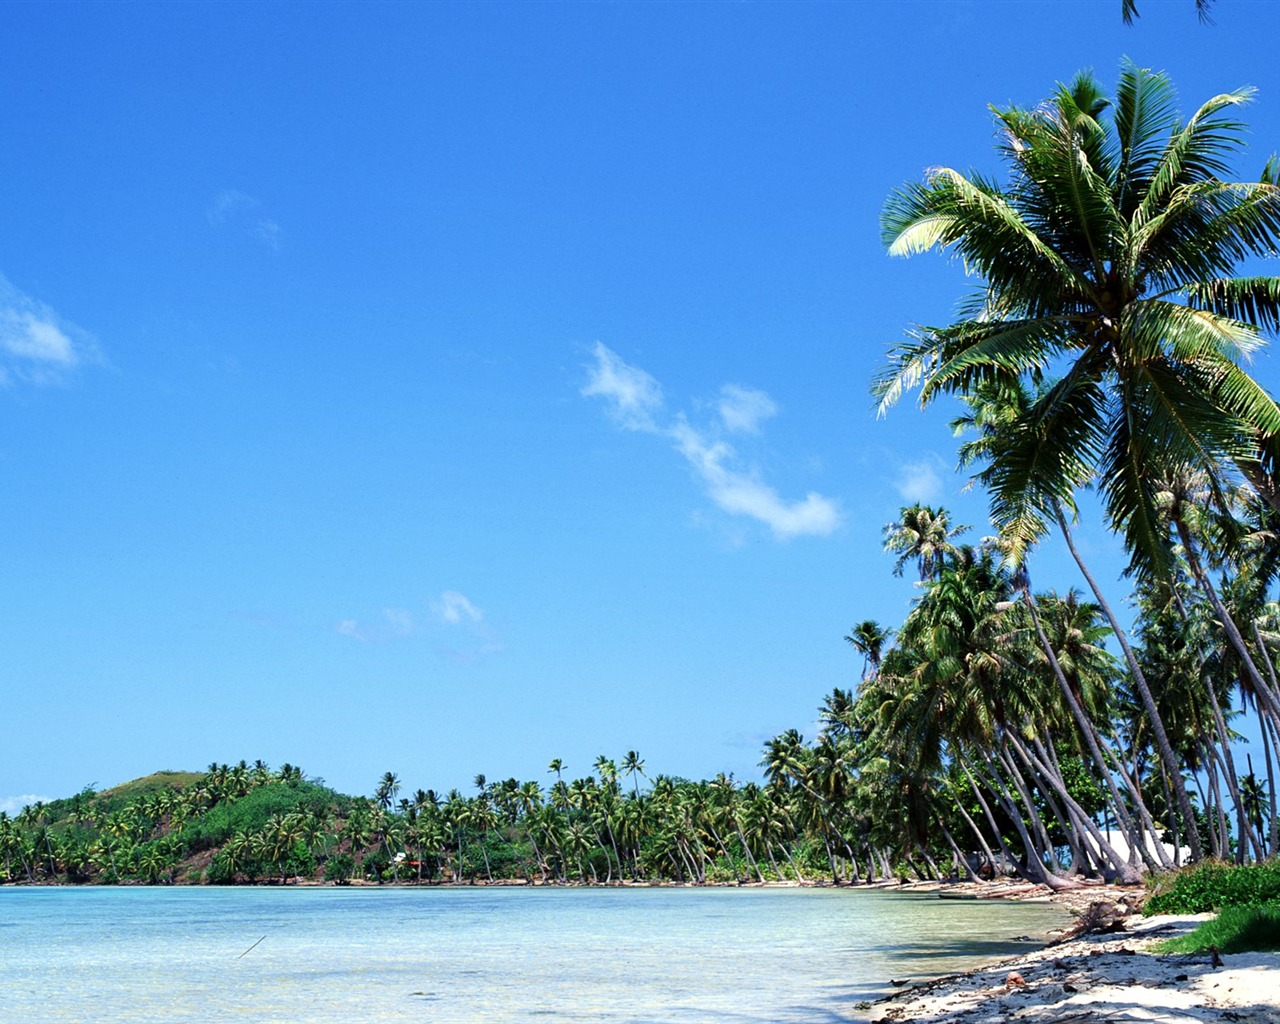 coconut trees swaying in the Tahitian coast wallpaper - 1280x1024 wallpaper download